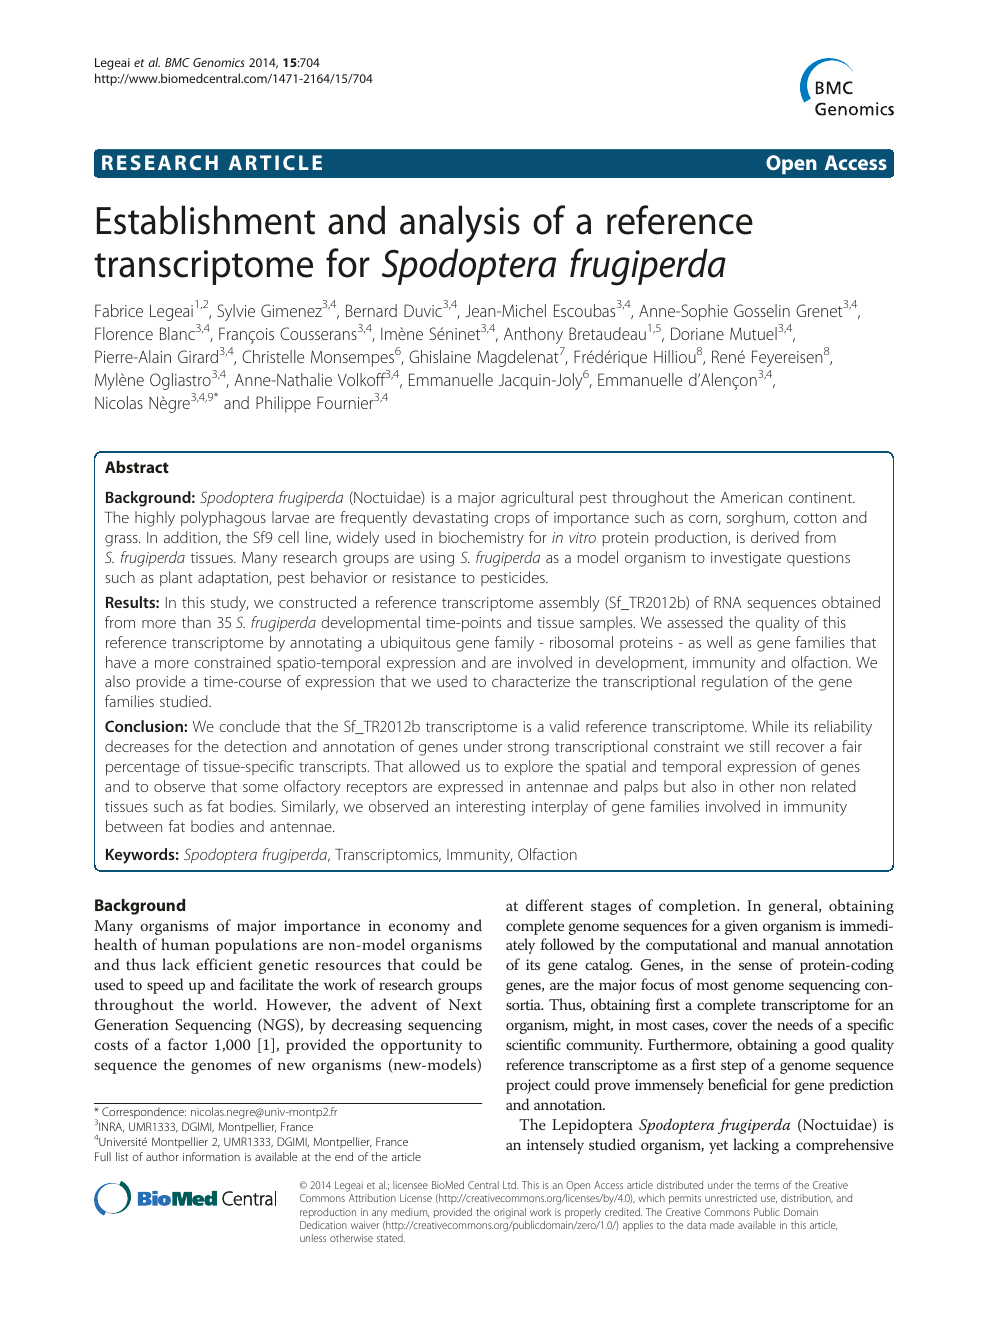 Formation Home Staging Montpellier establishment and analysis of a reference transcriptome for